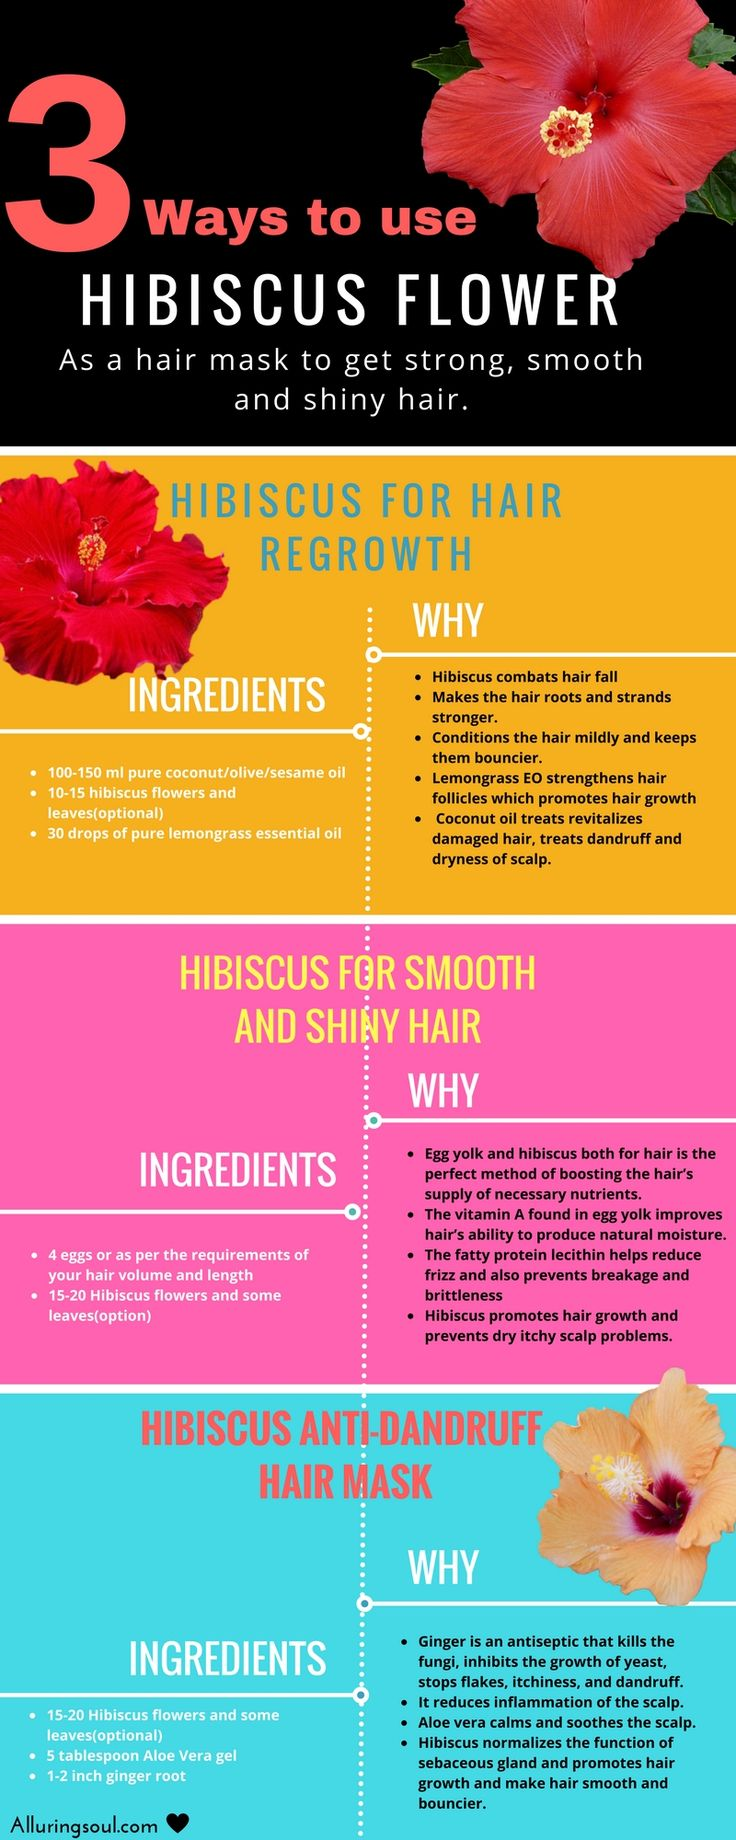 Hibiscus for hair - Regrowth, strong and shiny hair. Hibiscus is a beautiful flower which is very effective for treating hair problems.